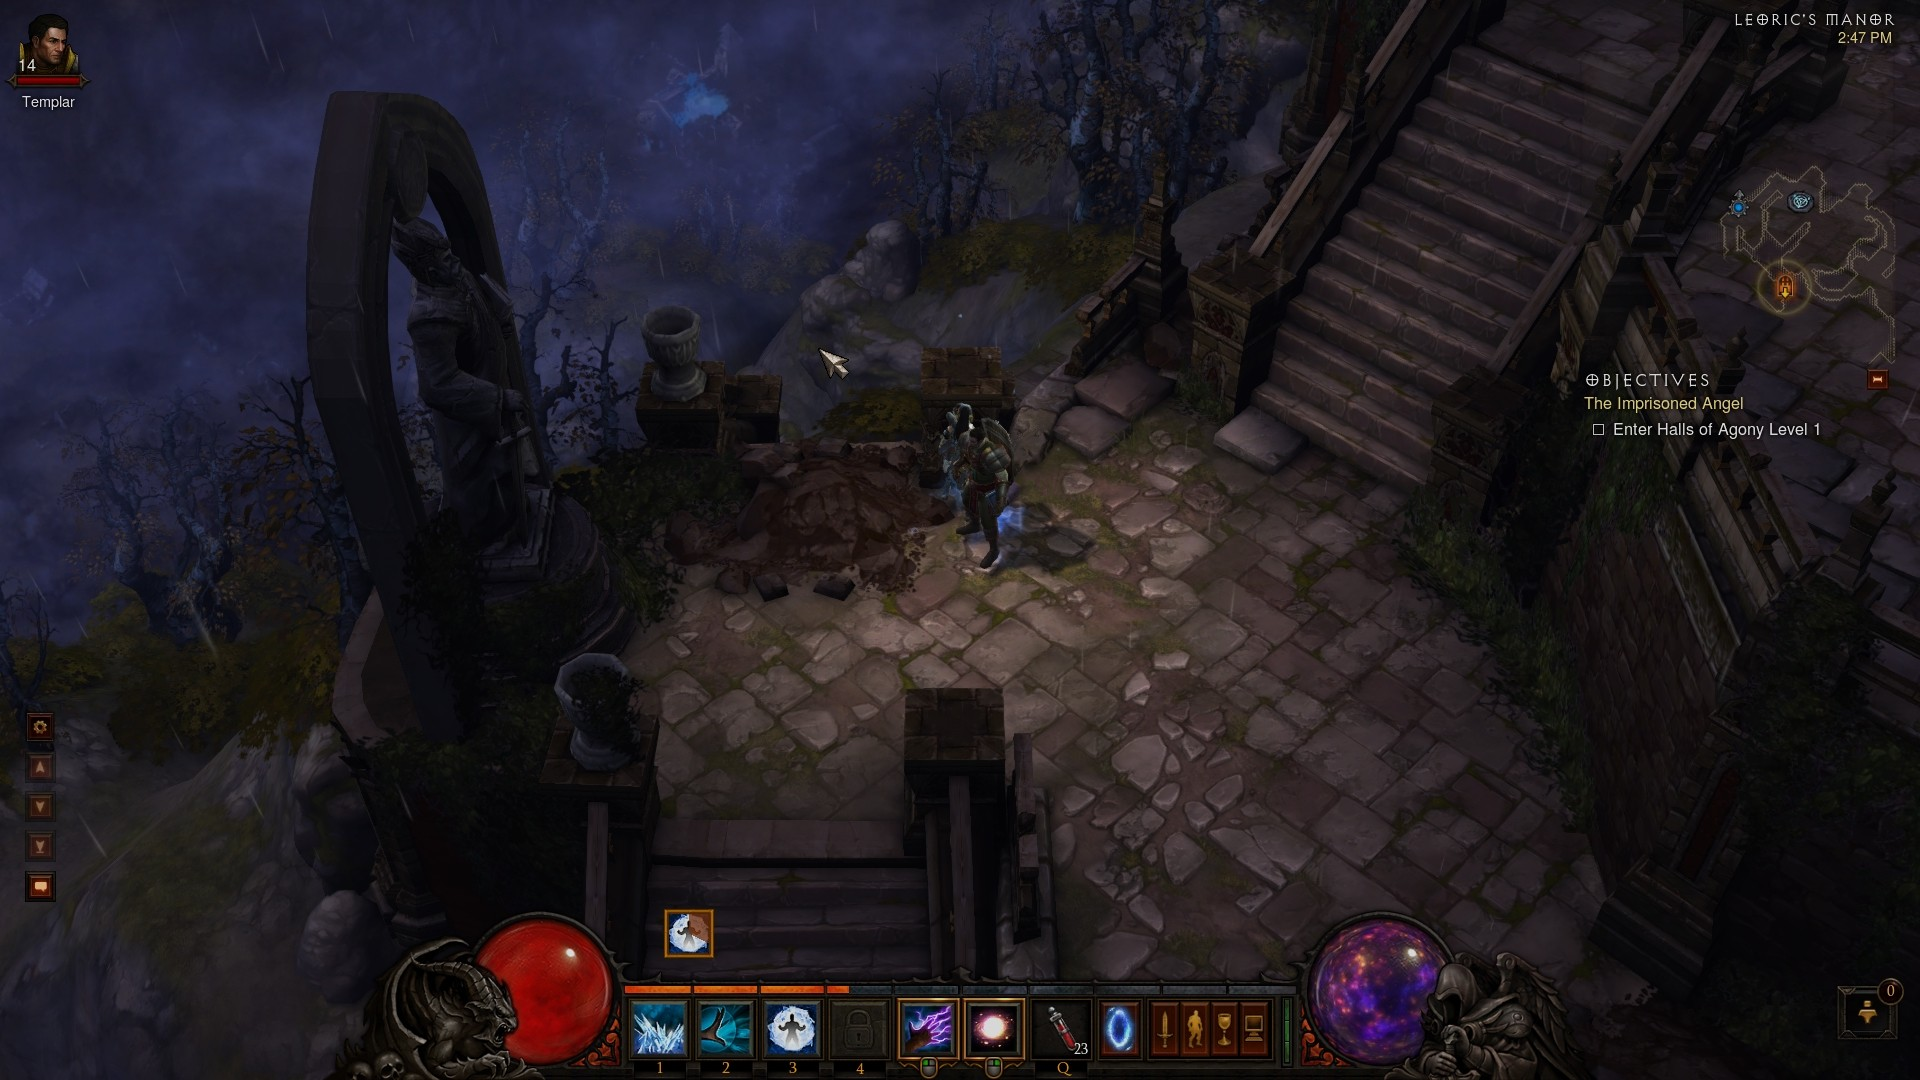 Diablo 3 - That hole looks much bigger from up here...